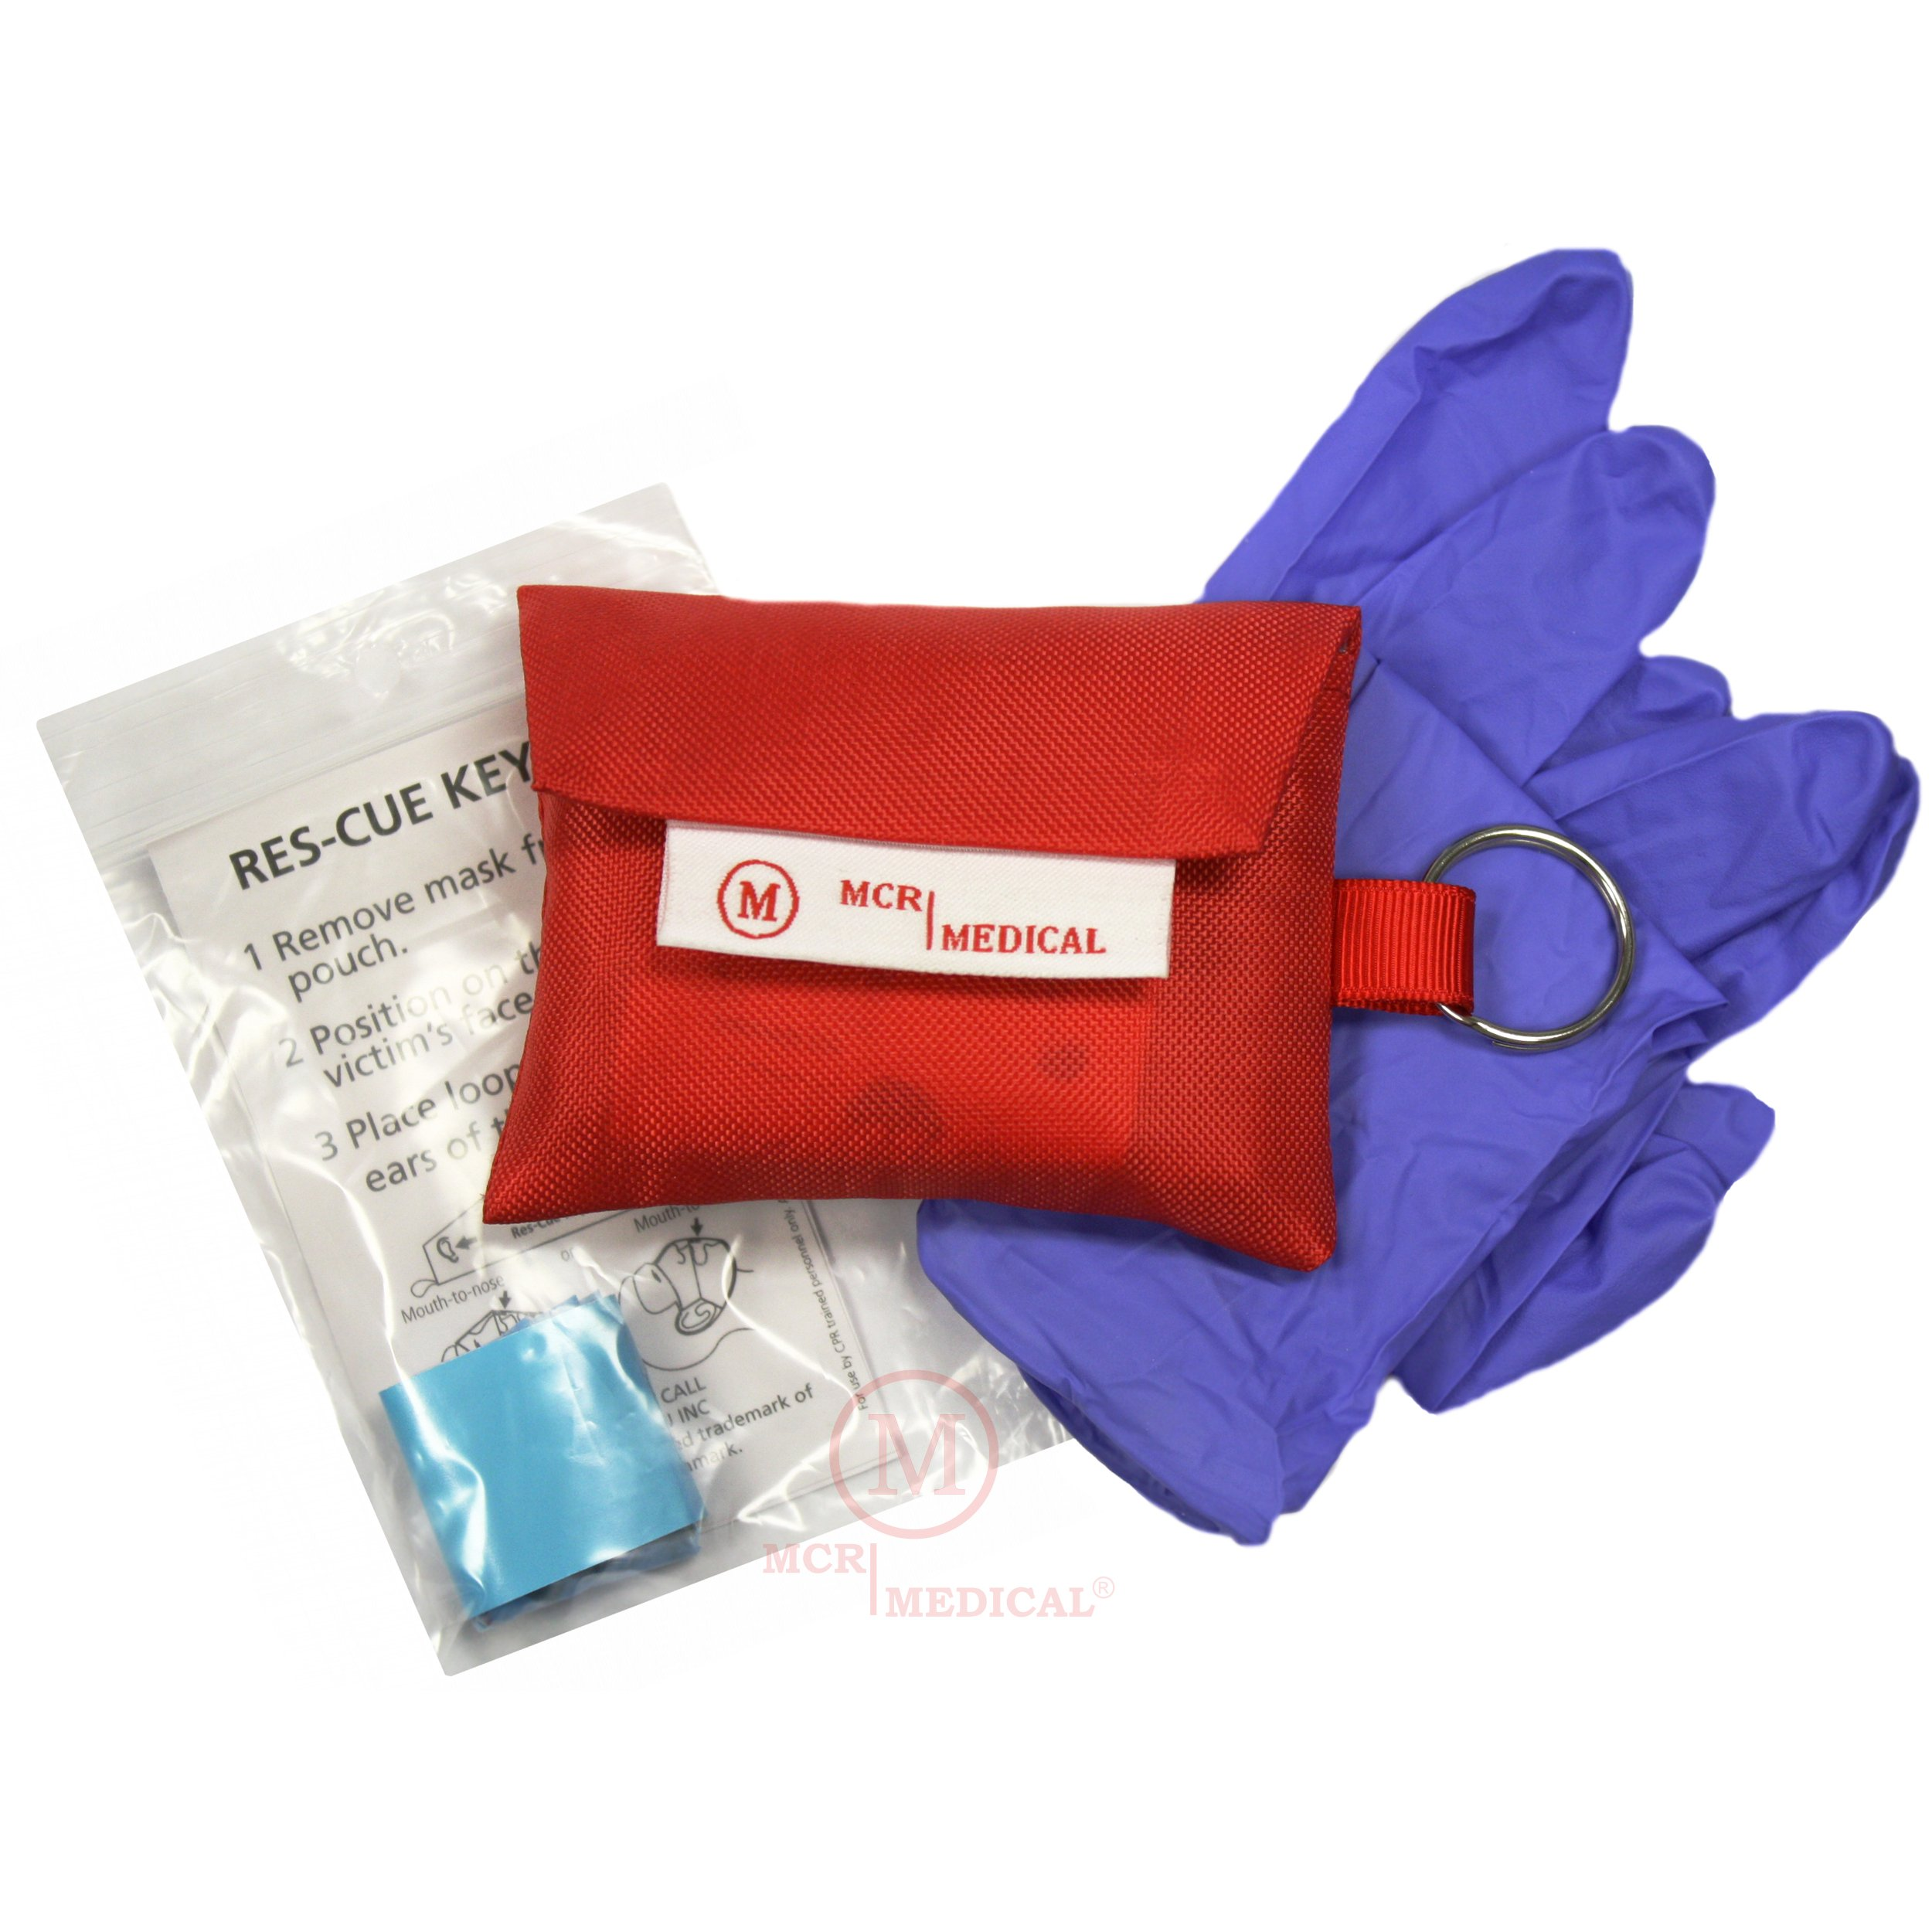 CPR Mask Keychain with Nitrile Gloves (Case of 250), MCR Medical